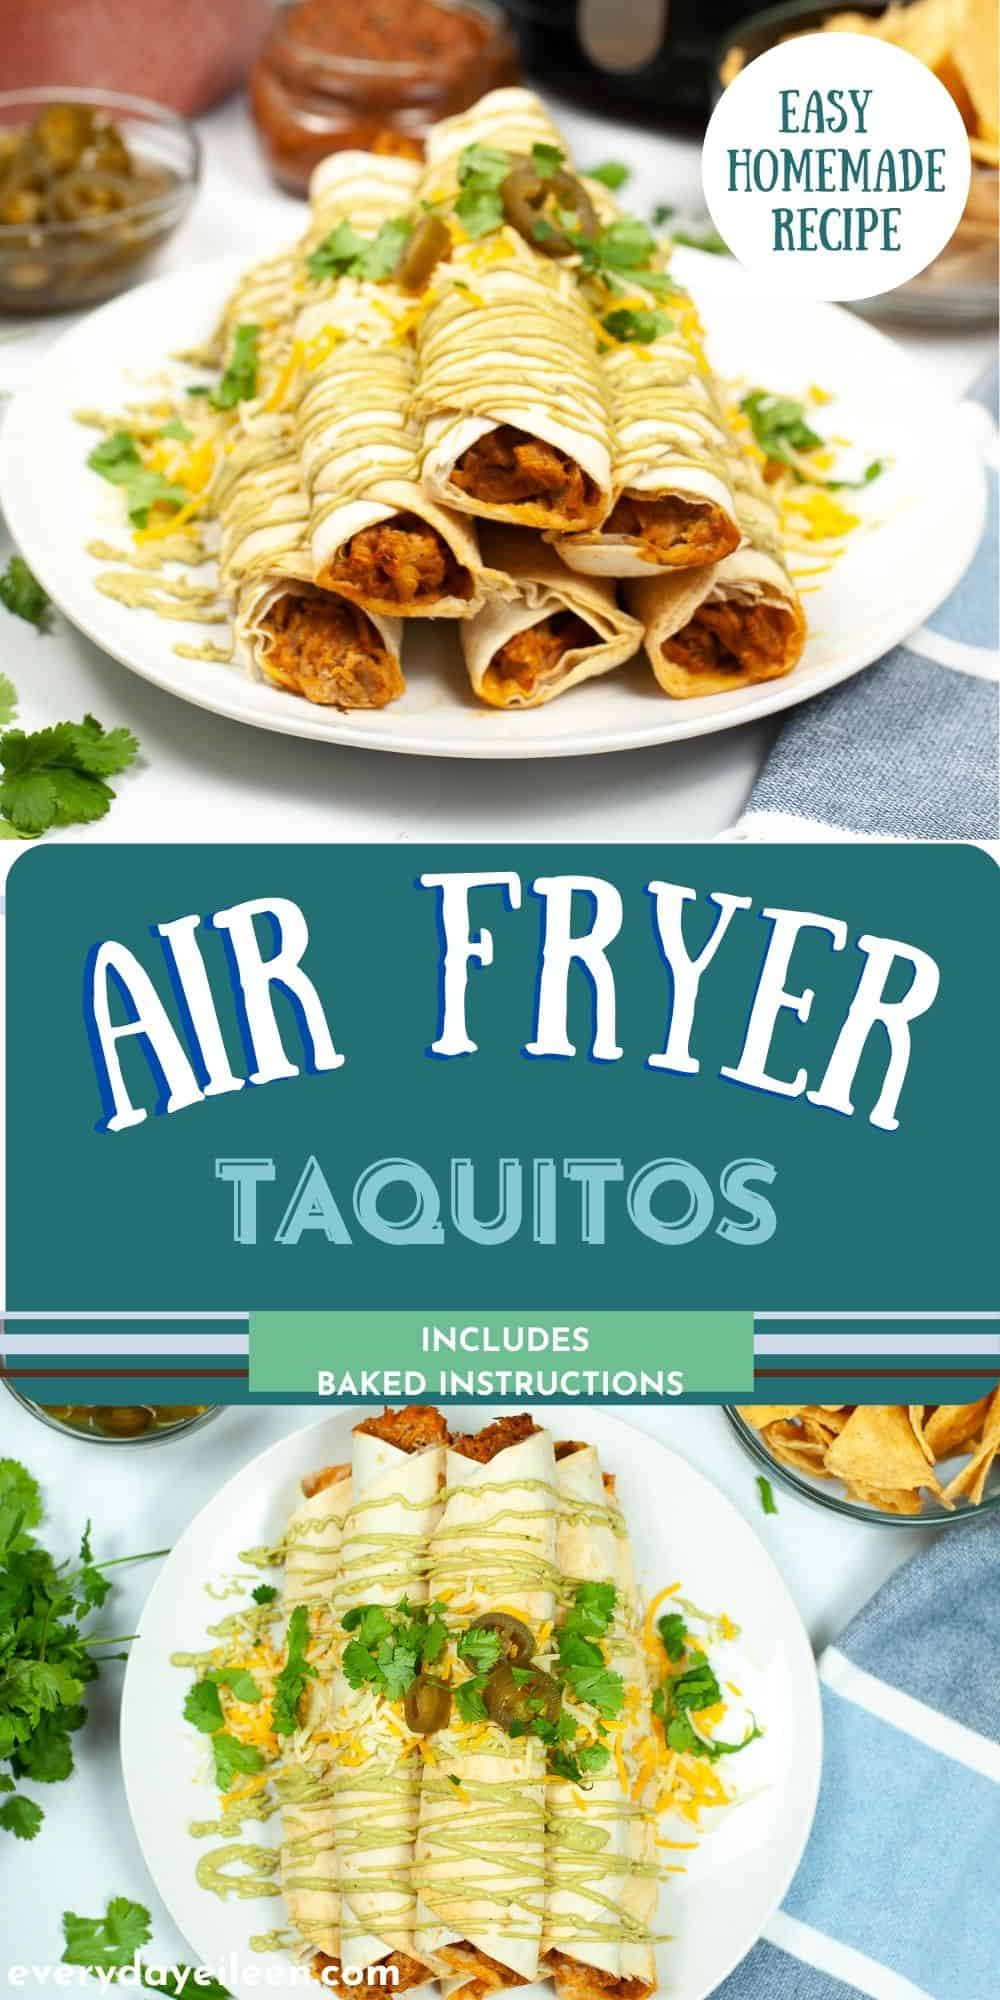 Chicken Taquitos, Air Fryer or Baked instructions are included for these delicious Mexican mini tacos that are rolled and loaded with perfectly seasoned chicken. Shredded beef can be used. We have included both air fryer and baked instructions. Top with your favorite taco toppings. Perfect for a crowd, tailgating, Cinco de Mayo. via @/everydayeileen/